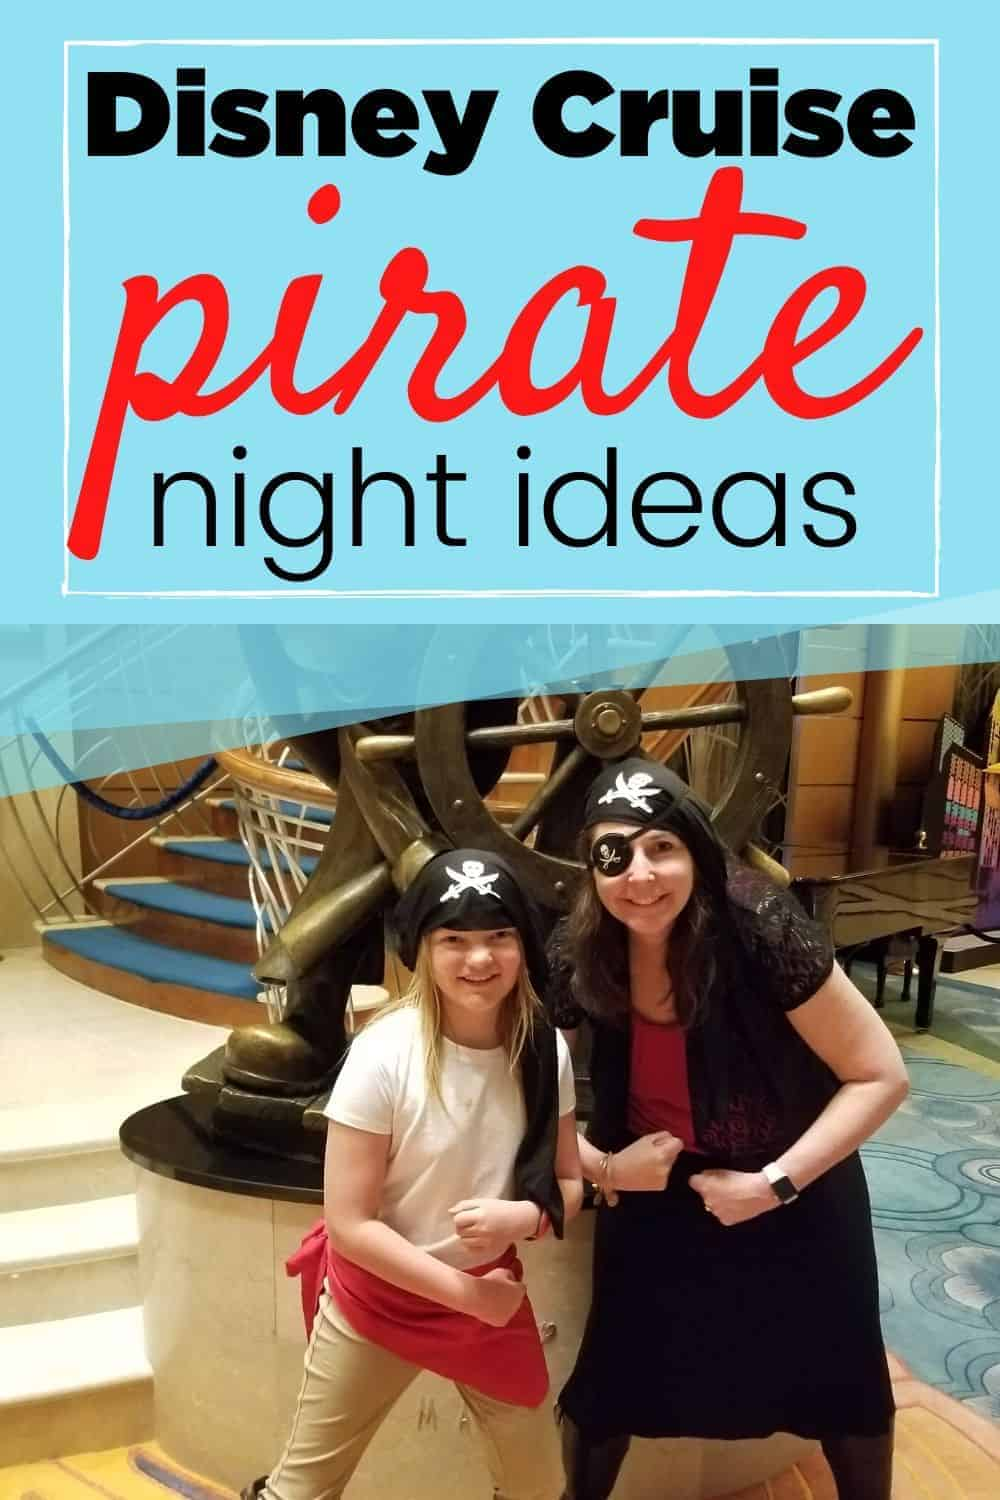 Disney Cruise Pirate Night is a fun time that everyone can join in on, but you need a pirate costume! We'll answer all of your pirate night questions here to make sure you're all set before you leave for your cruise!